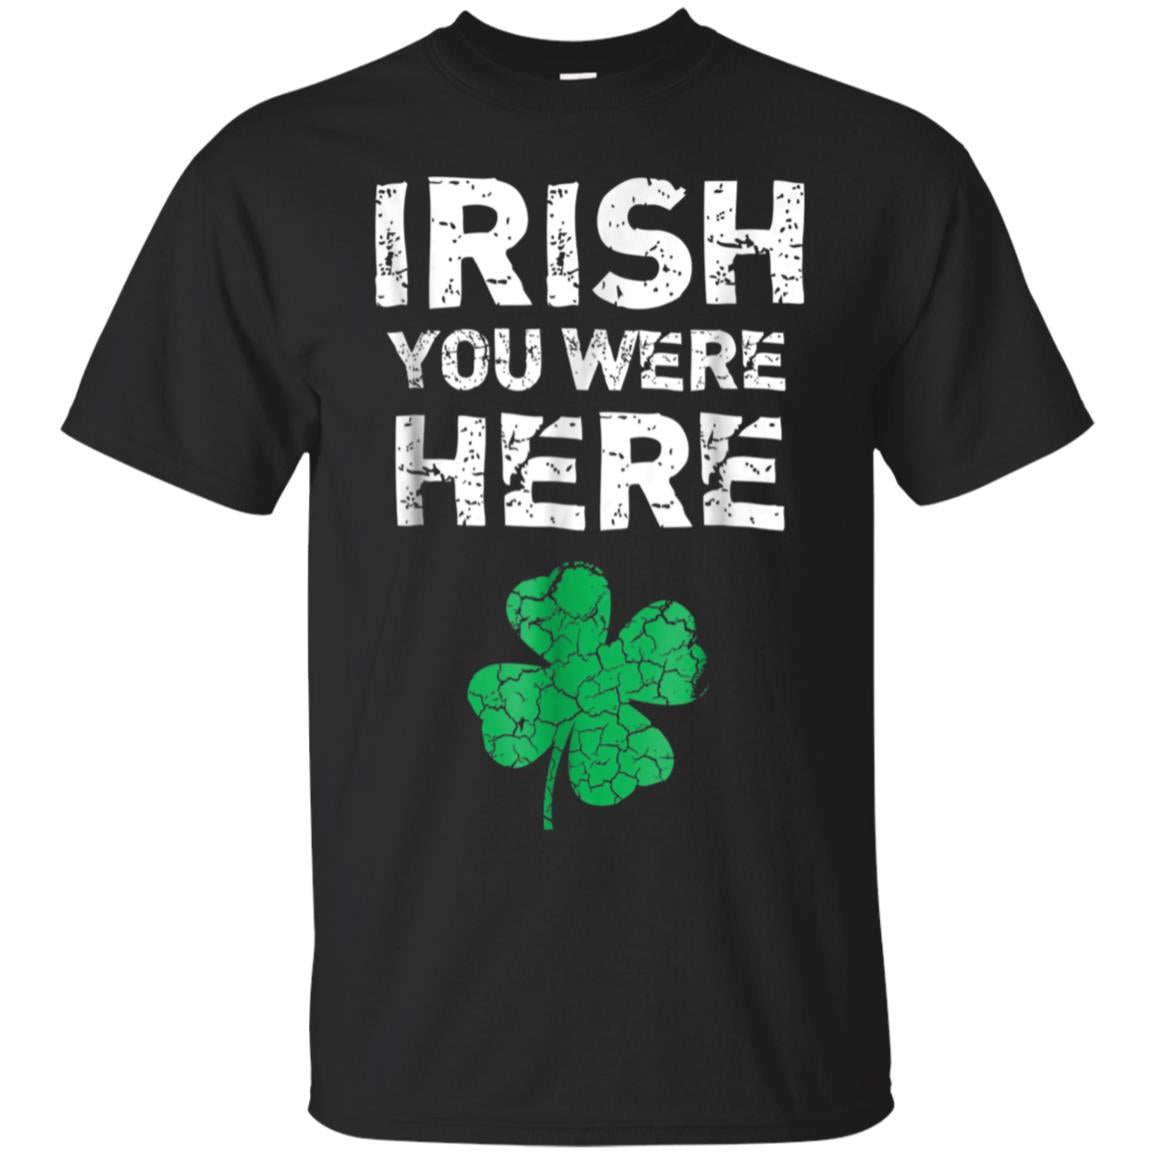 Irish You Were Here Funny St. Saint Patrick's Day T-Shirt 99promocode